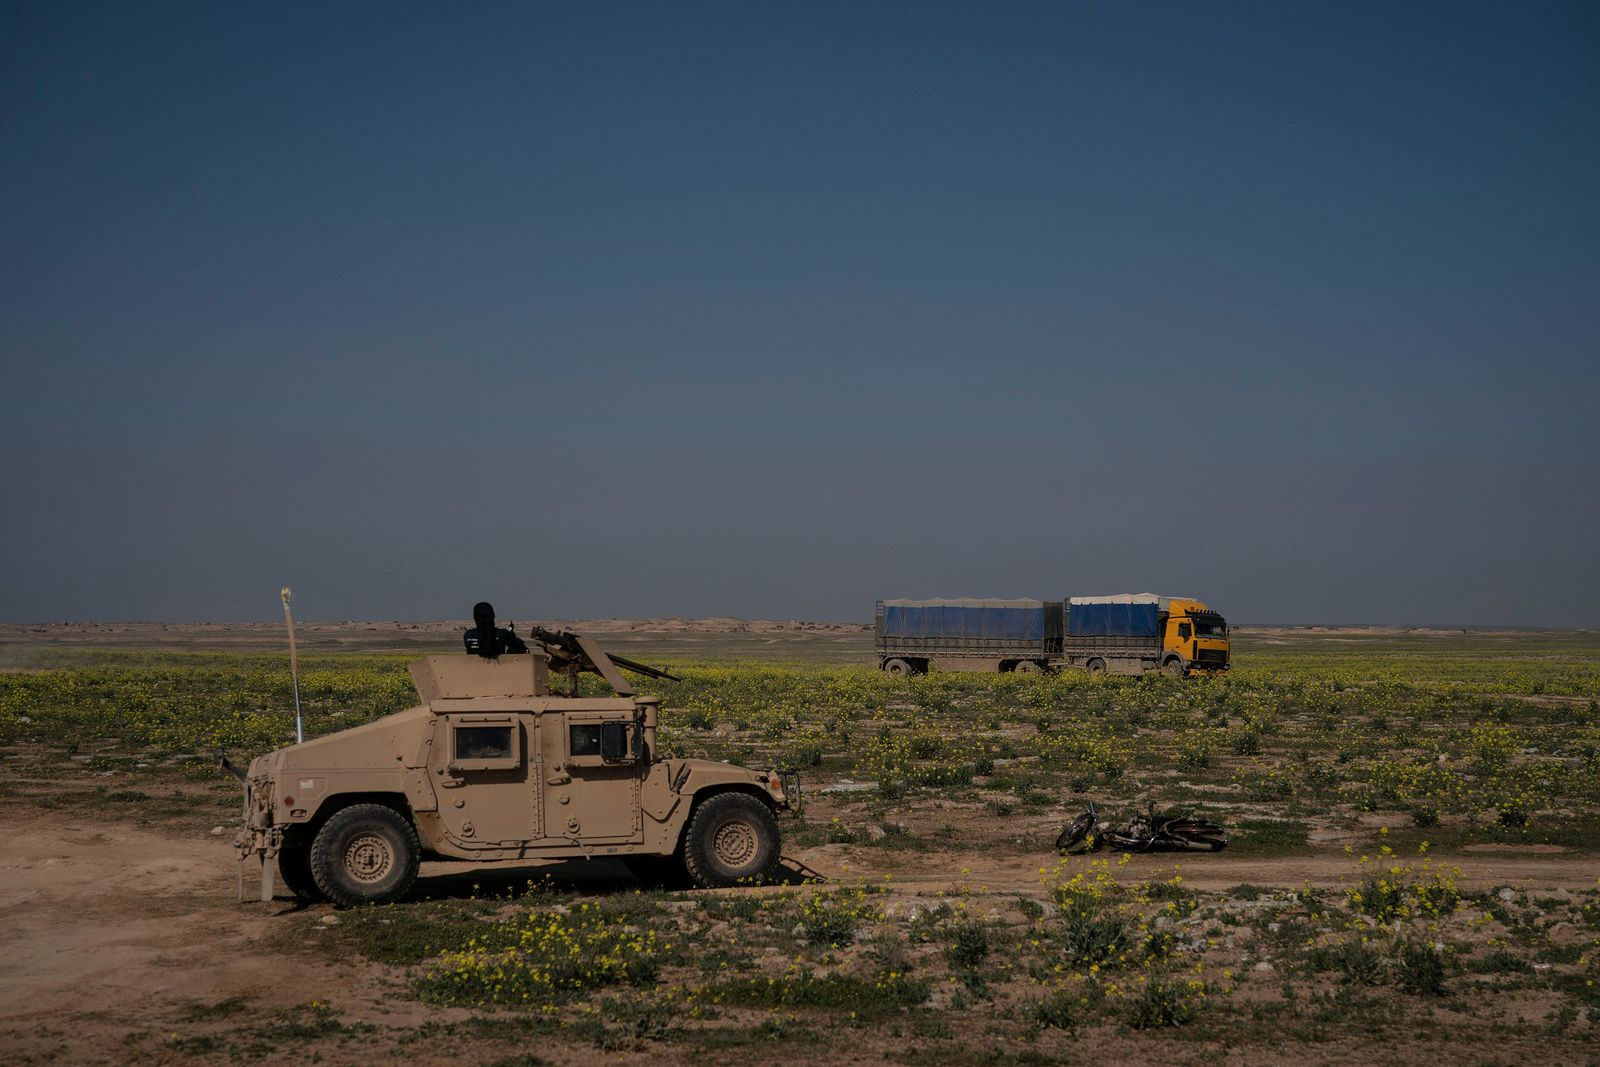 A U.S.-backed Syrian Democratic Forces (SDF) Humvee stands by as a truck that is part of a convoy evacuating hundreds out of the last territory held by Islamic State militants, passes in Baghouz, eastern Syria, Wednesday, Feb. 20, 2019. The evacuation signals the end of a week long standoff and opens the way to U.S.-backed Syrian Democratic Forces (SDF) recapture the territory. (AP Photo/Felipe Dana)